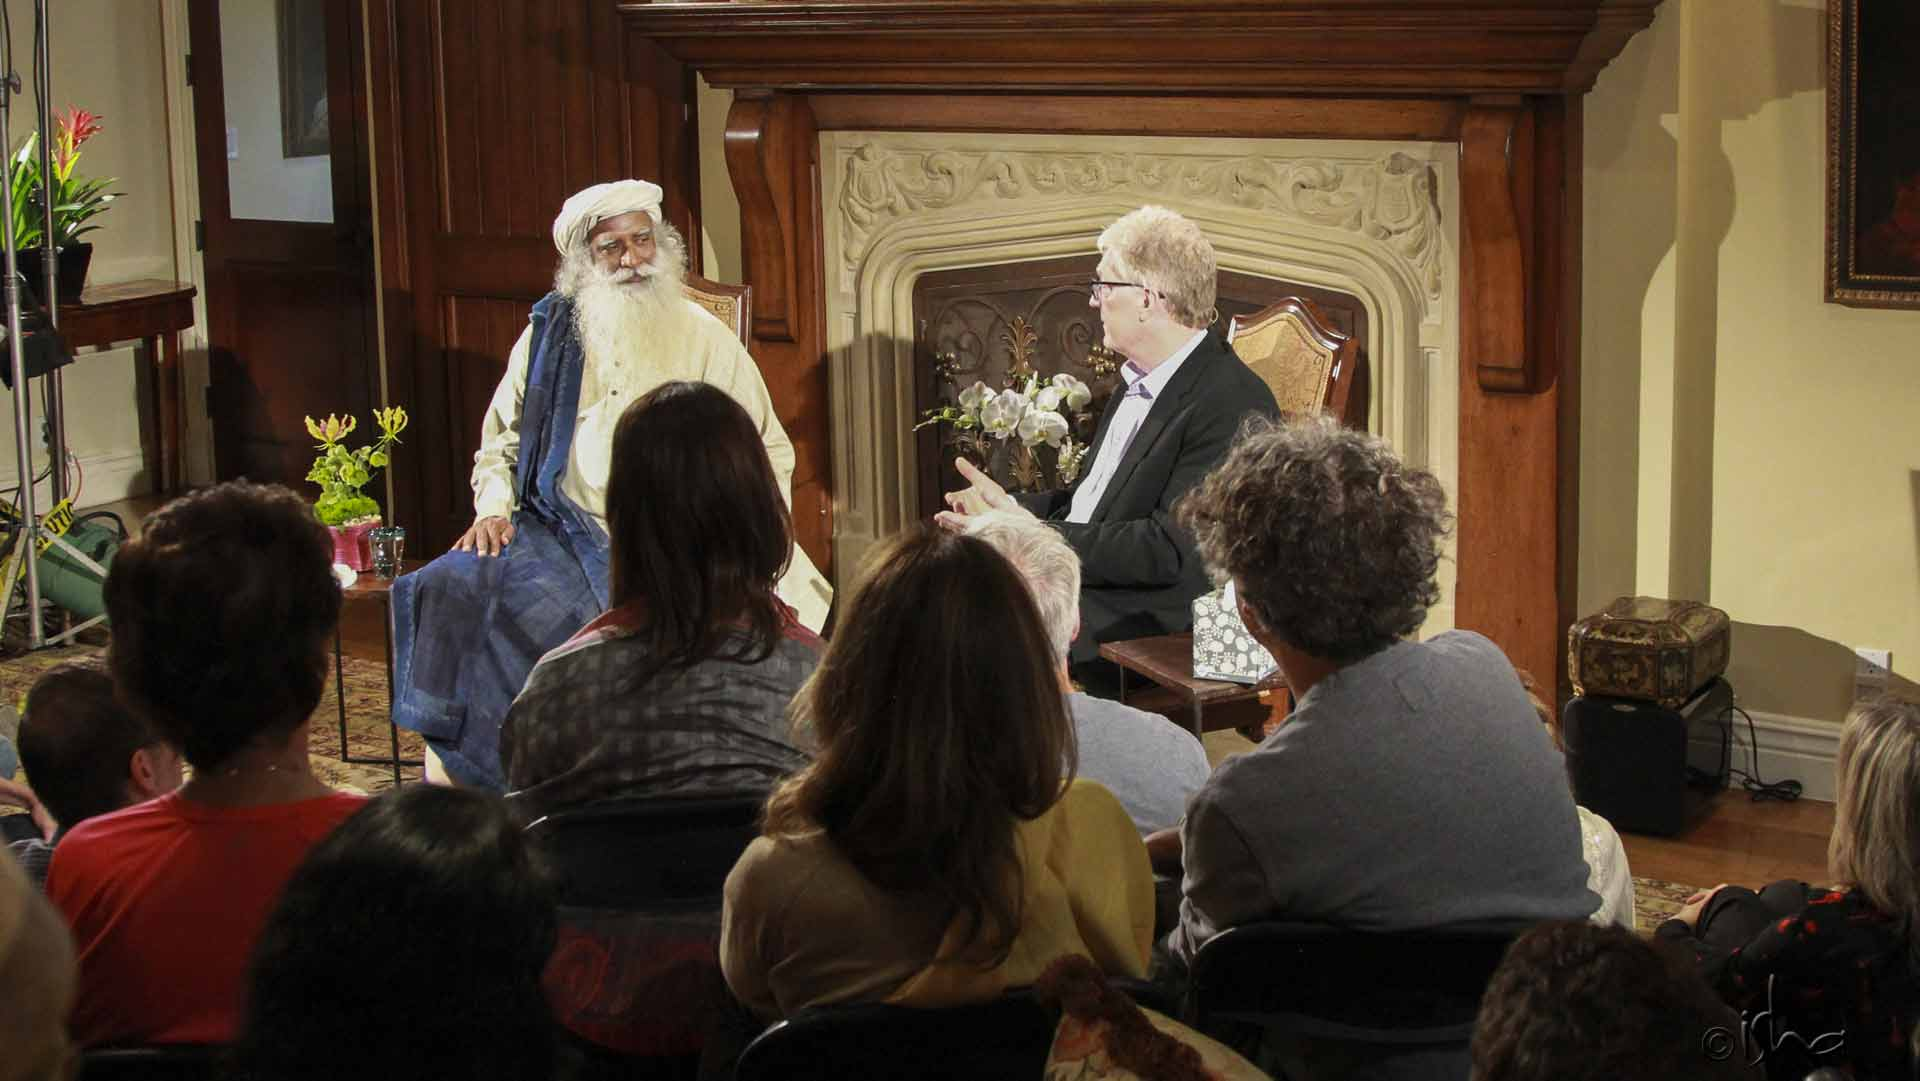 Sir Ken Robinson, author, speaker, and international advisor on education, in conversation with Sadhguru, Los Angeles, California